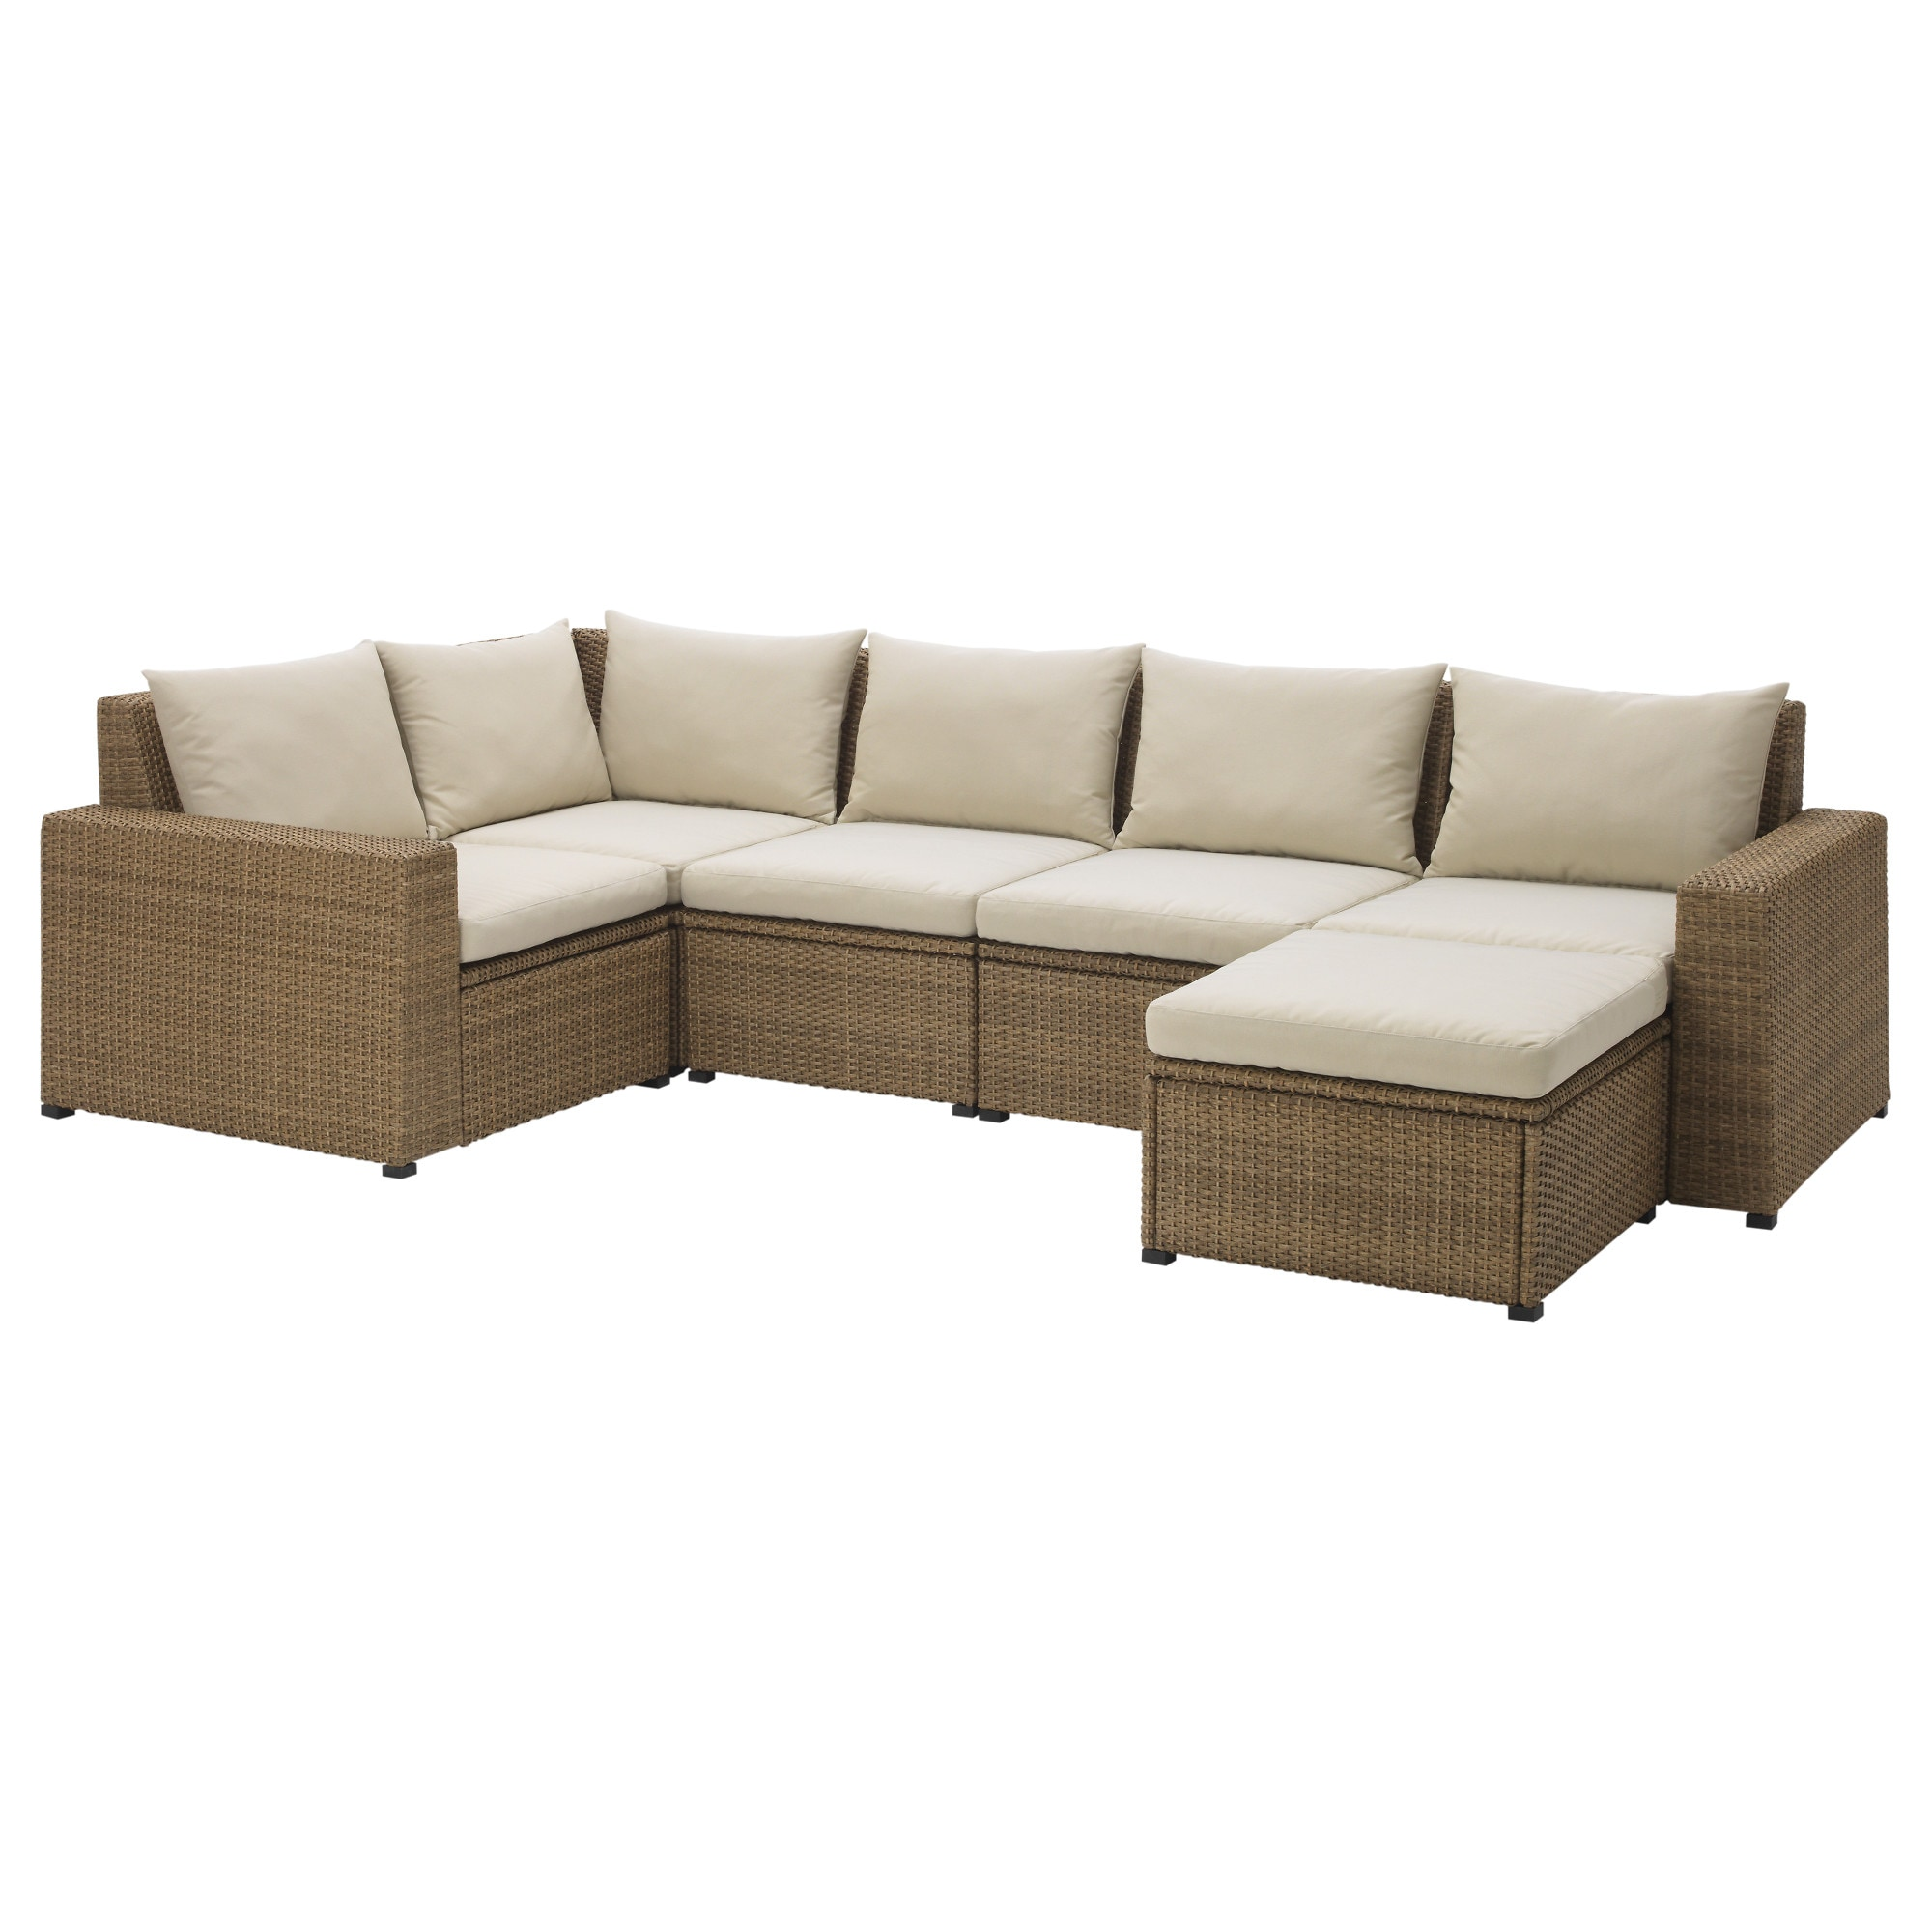 Outdoor sofa sections IKEA